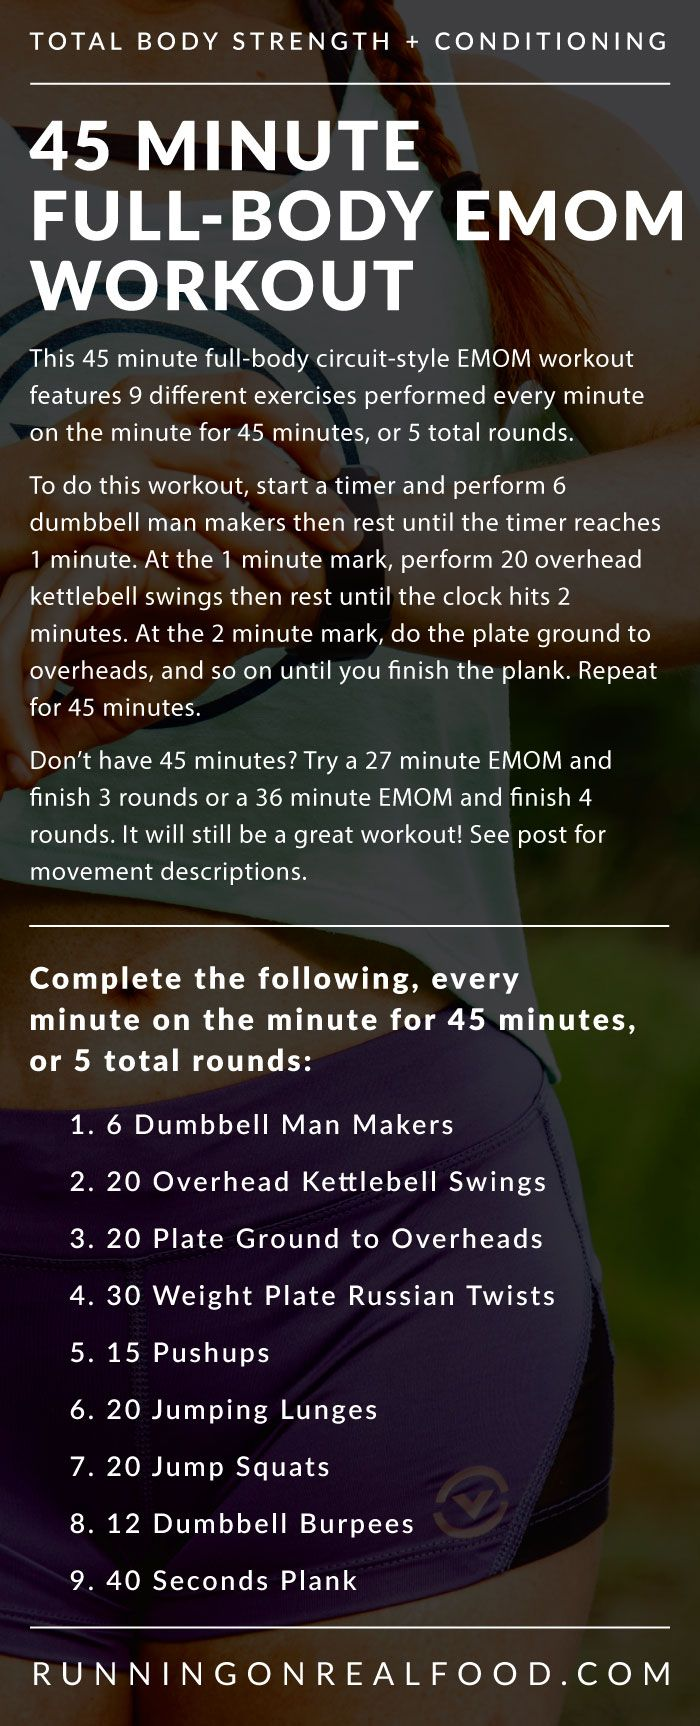 45 Minute Full-Body EMOM Workout